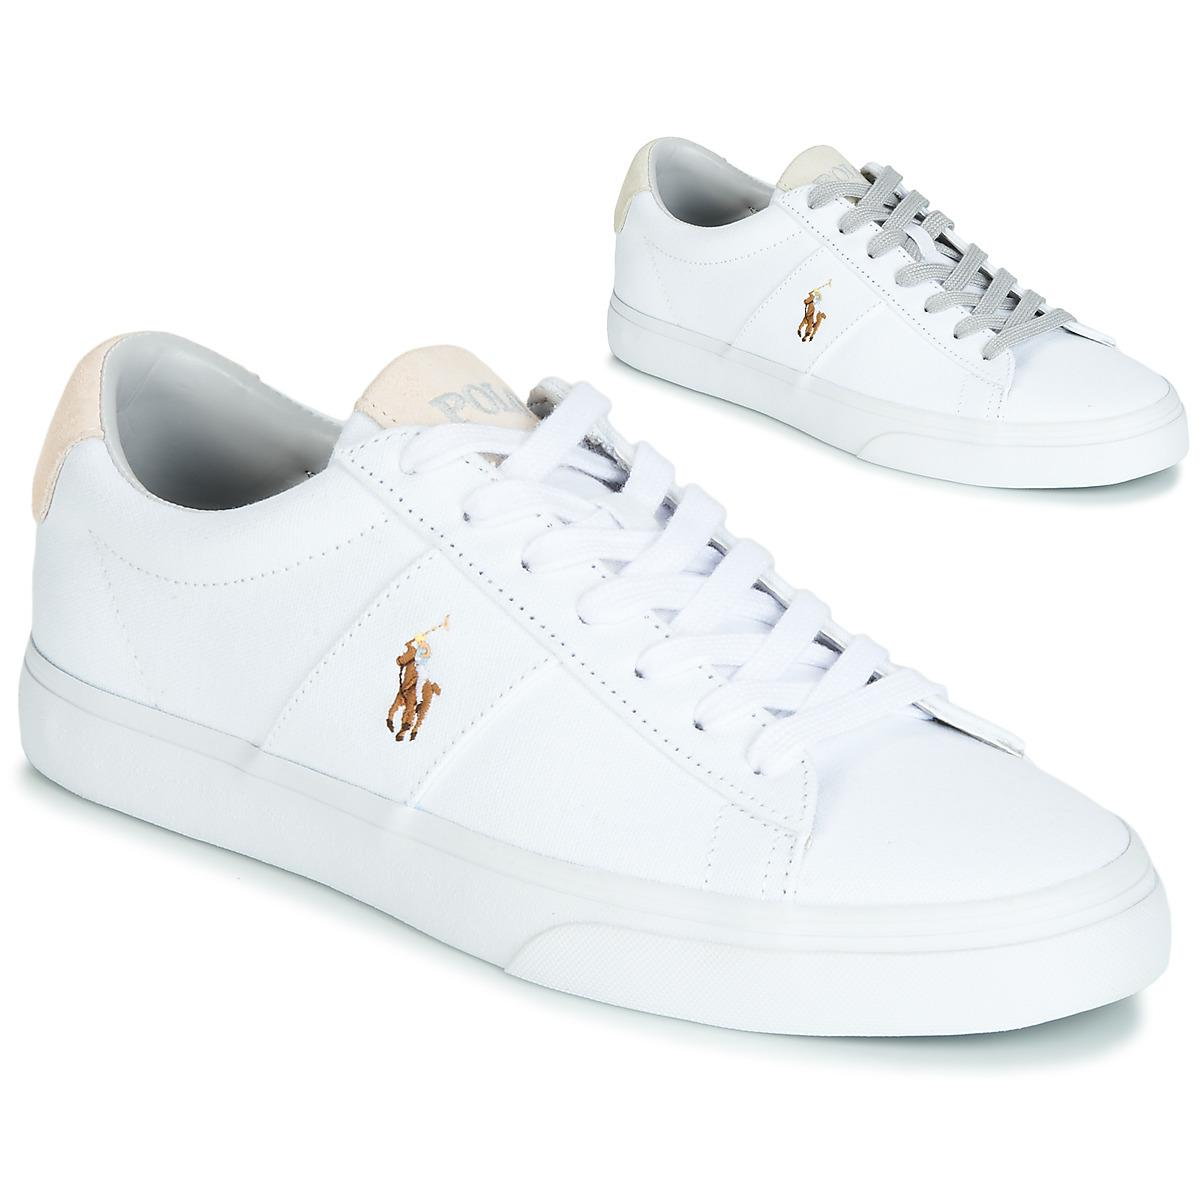 b7857509d91 Polo Ralph Lauren Sayer Men s Shoes (trainers) In White in White for ...